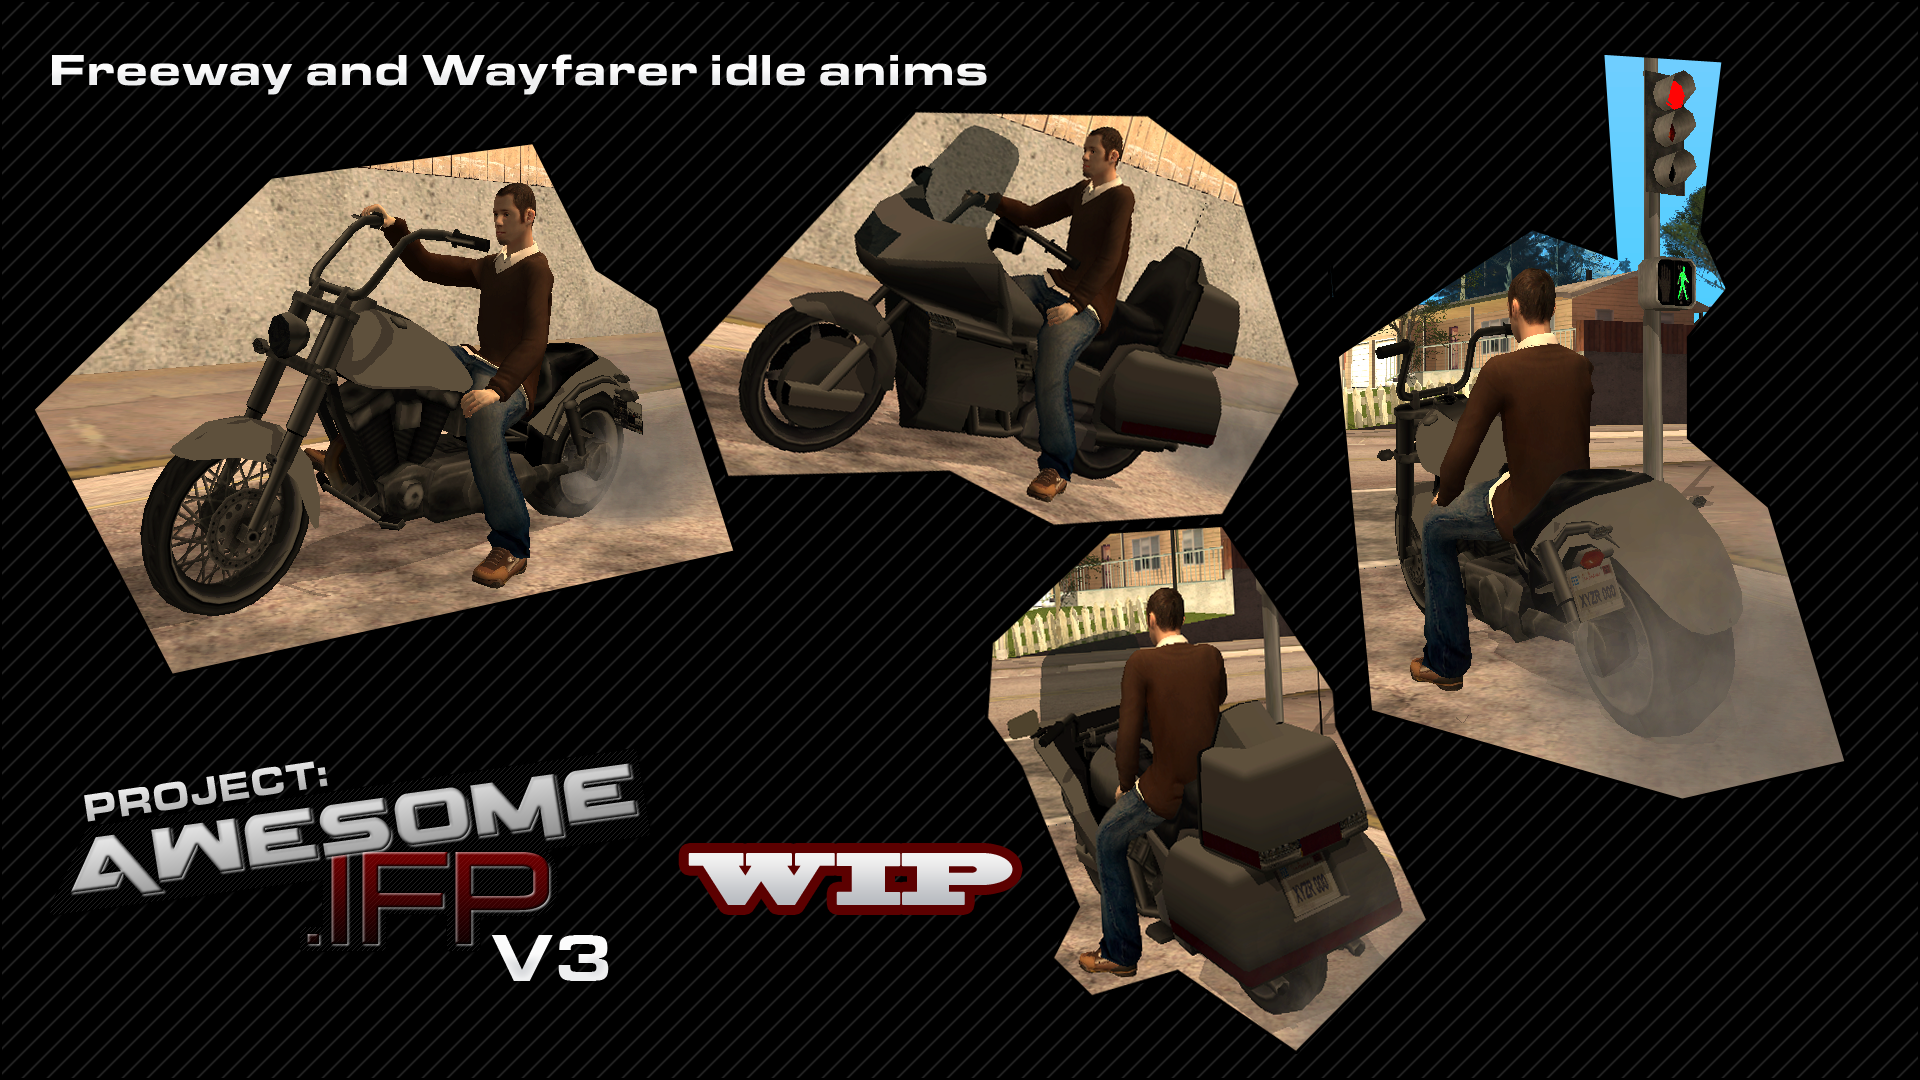 Descargar Gratis X Tema Gta Para Windows Wallpapers Grand Theft Auto